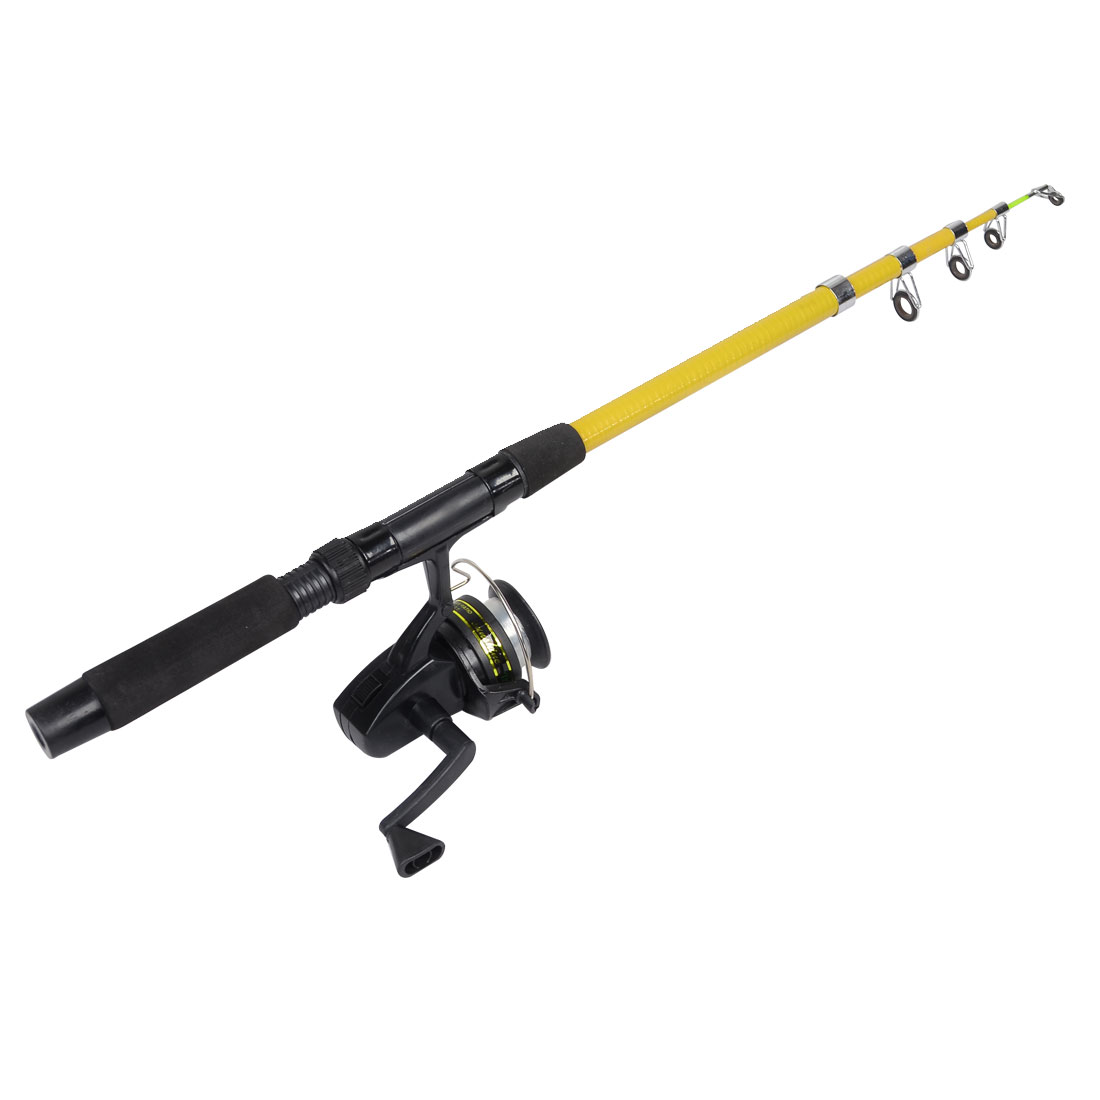 1.7M Long 5 Section Telescopic Fishing Rod Pole w Casting Spinning Reel